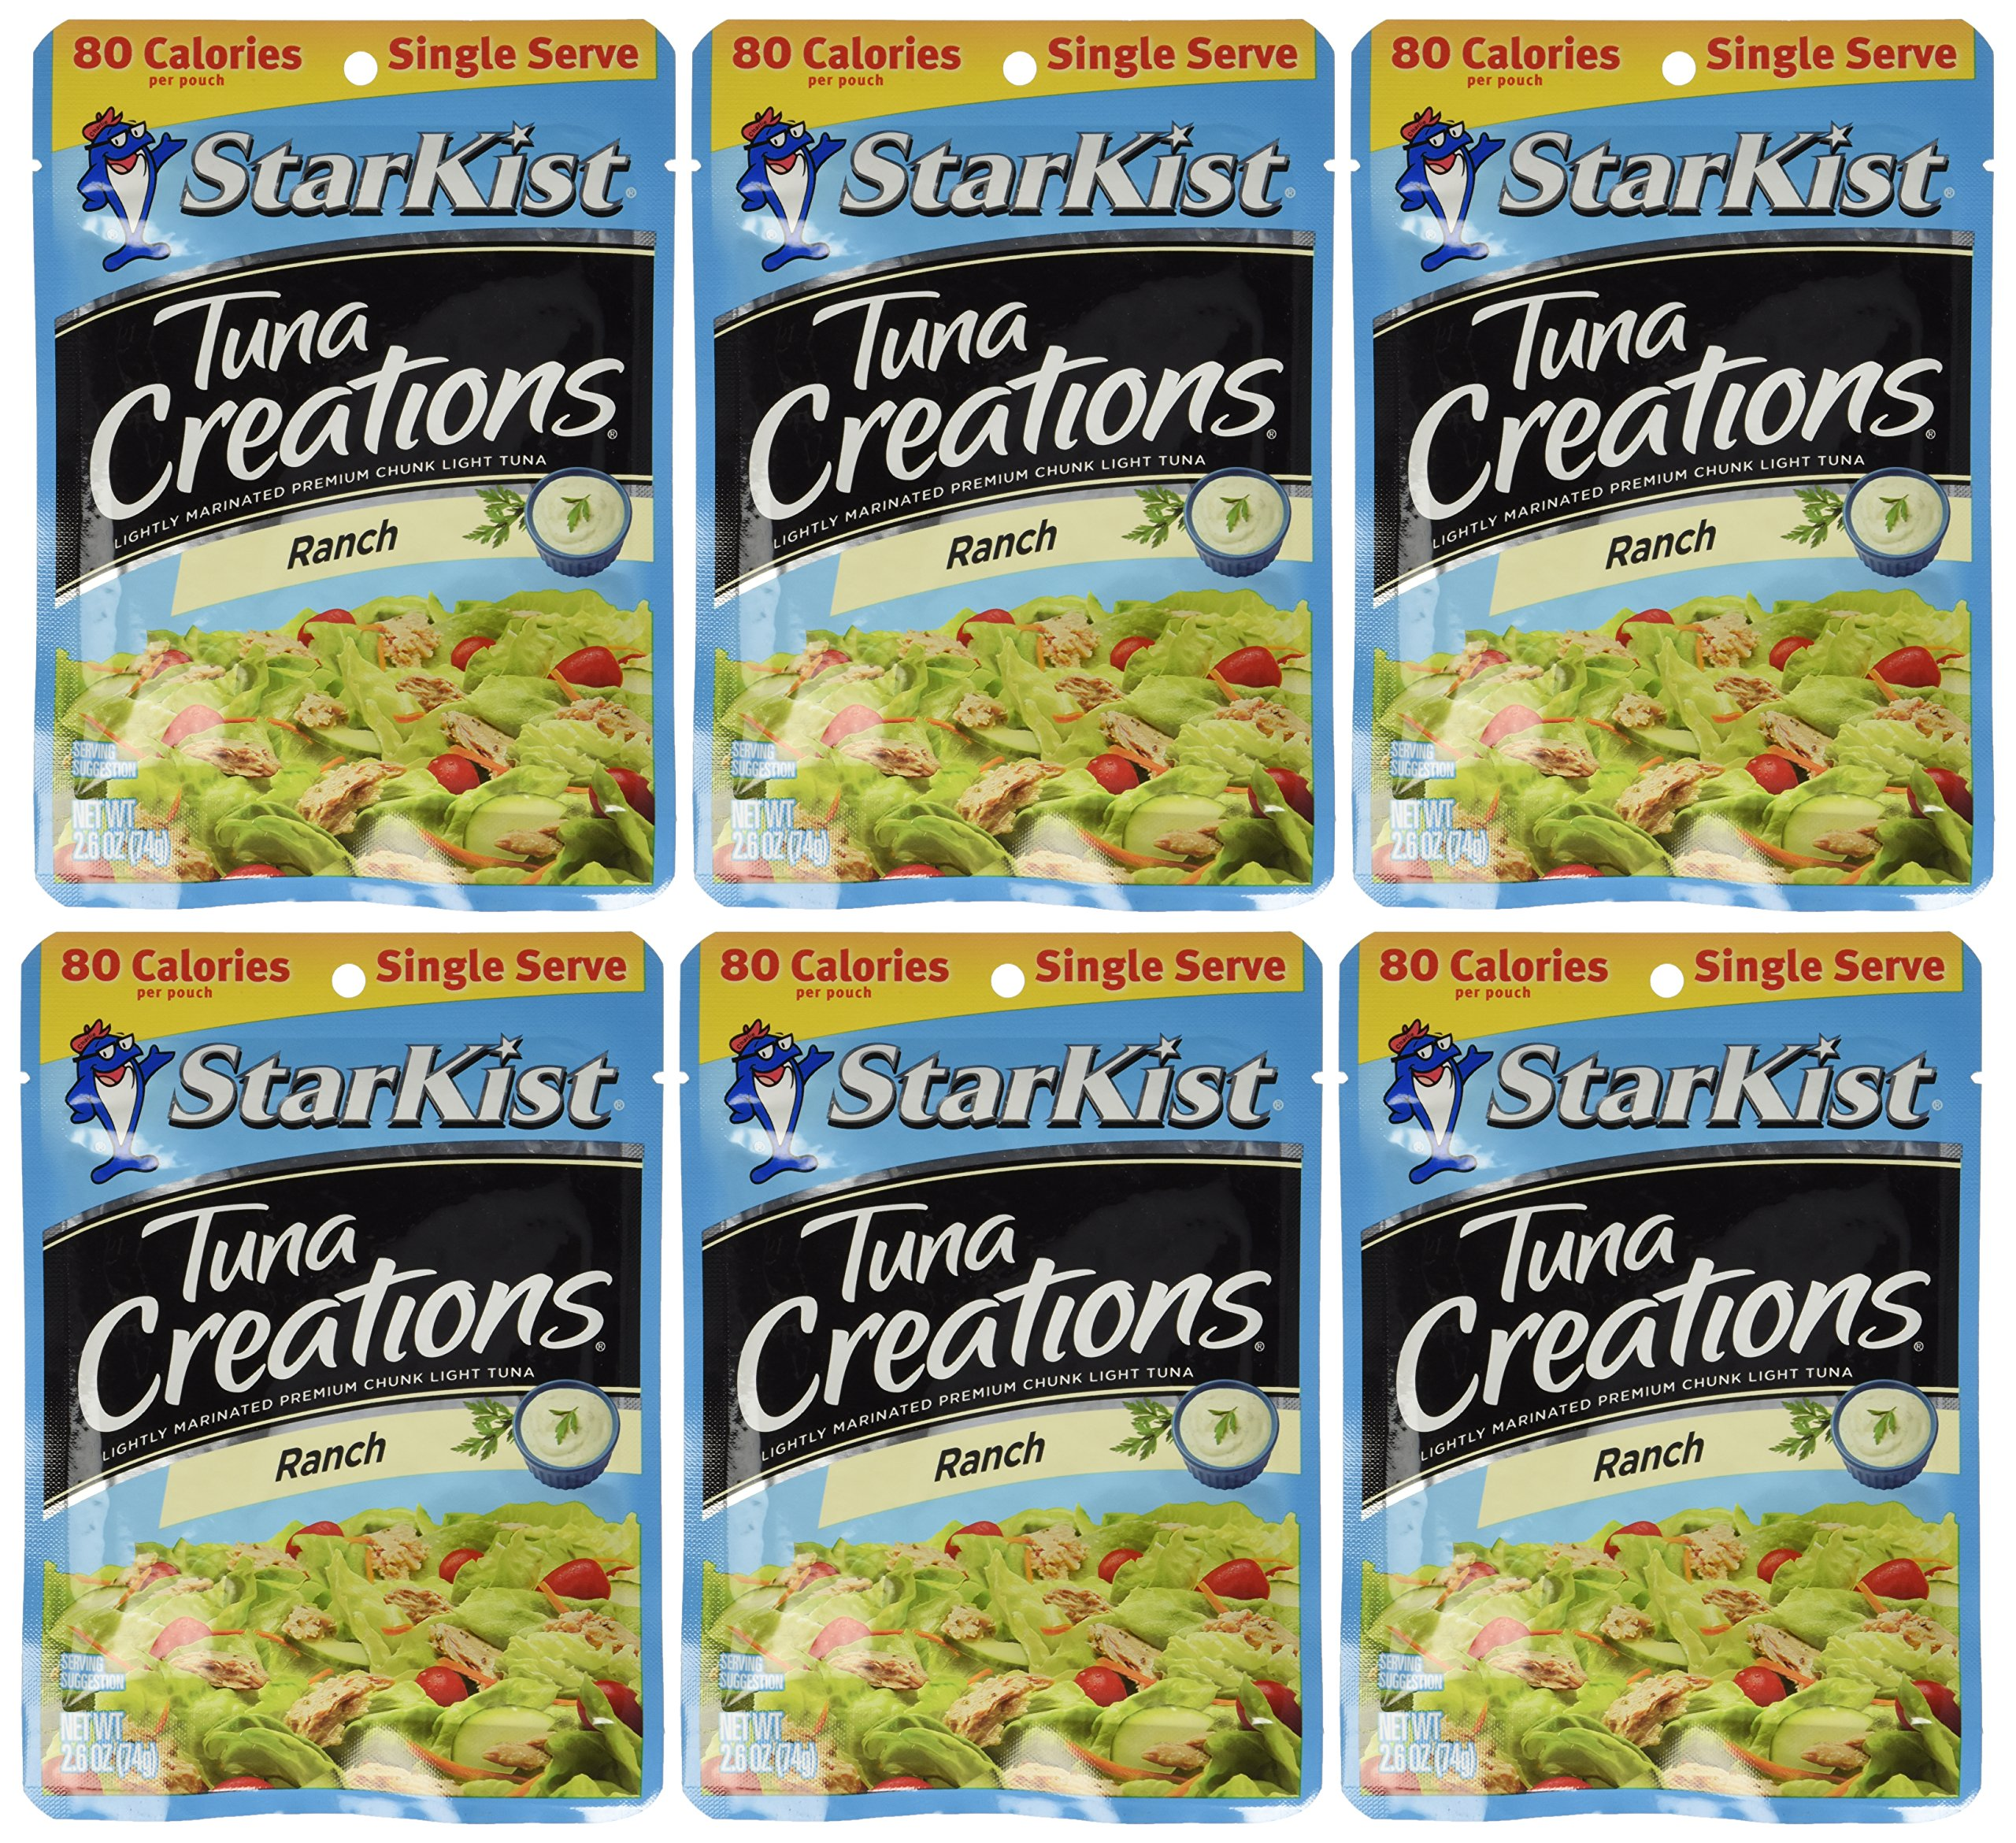 Starkist Tuna Creations Ranch Single Serve 2.6oz Pouch (Pack of 6)